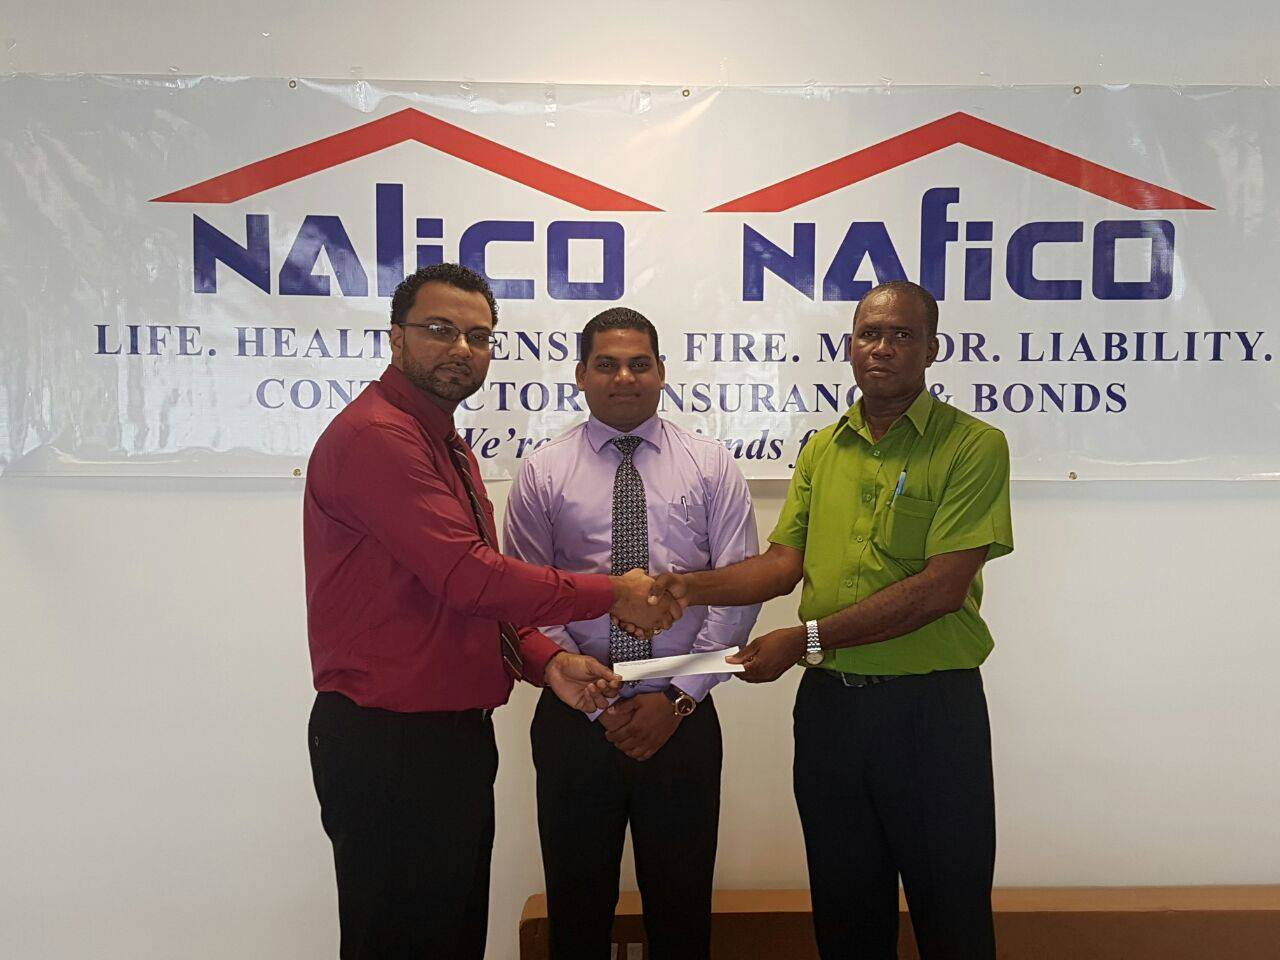 NALICO/NAFICO settles Group Personal Accident claim for death of Sentinnel Security Officer who was killed by bandits whilst on the job. In photo are Mr. Cedric Browne, Operations Manager of Sentinnel Security receiving cheque for $1,000,000 from NAFICO's representatives, Mr. Anil Singh - Fire Manager and Mr. Shaun Salim - Assistant Fire Manager.